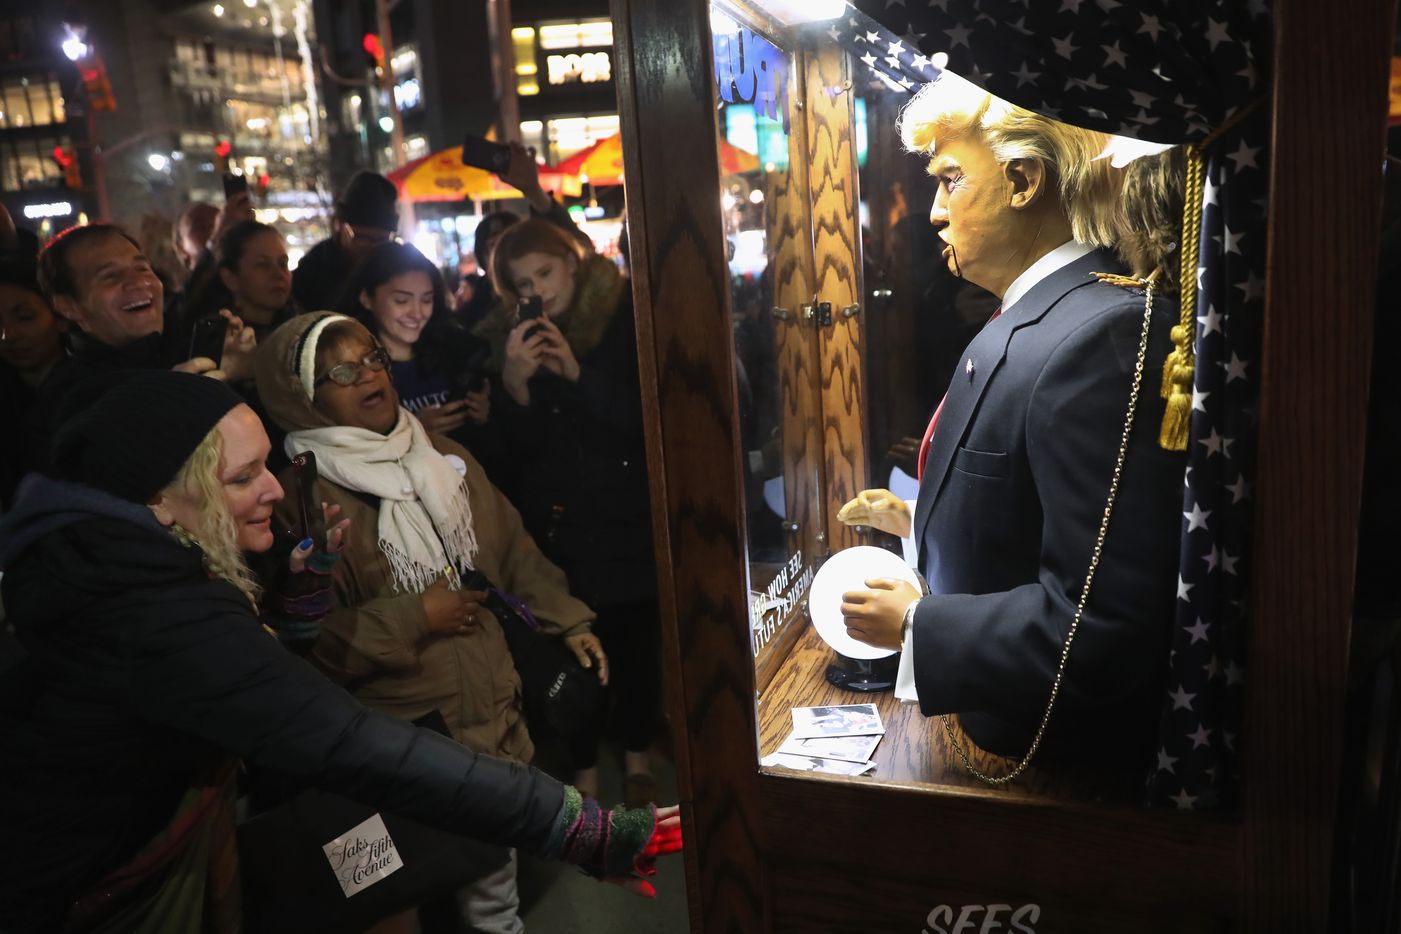 """People listen to a recording of a Trump impersonation outside a """"We Stand United"""" anti-Trump rally on January 19, 2017 in New York City. Thousands of people gathered outside the Trump International Hotel in Manhattan to protest on the eve of Donald Trump's inauguration as the 45th President of the United States."""